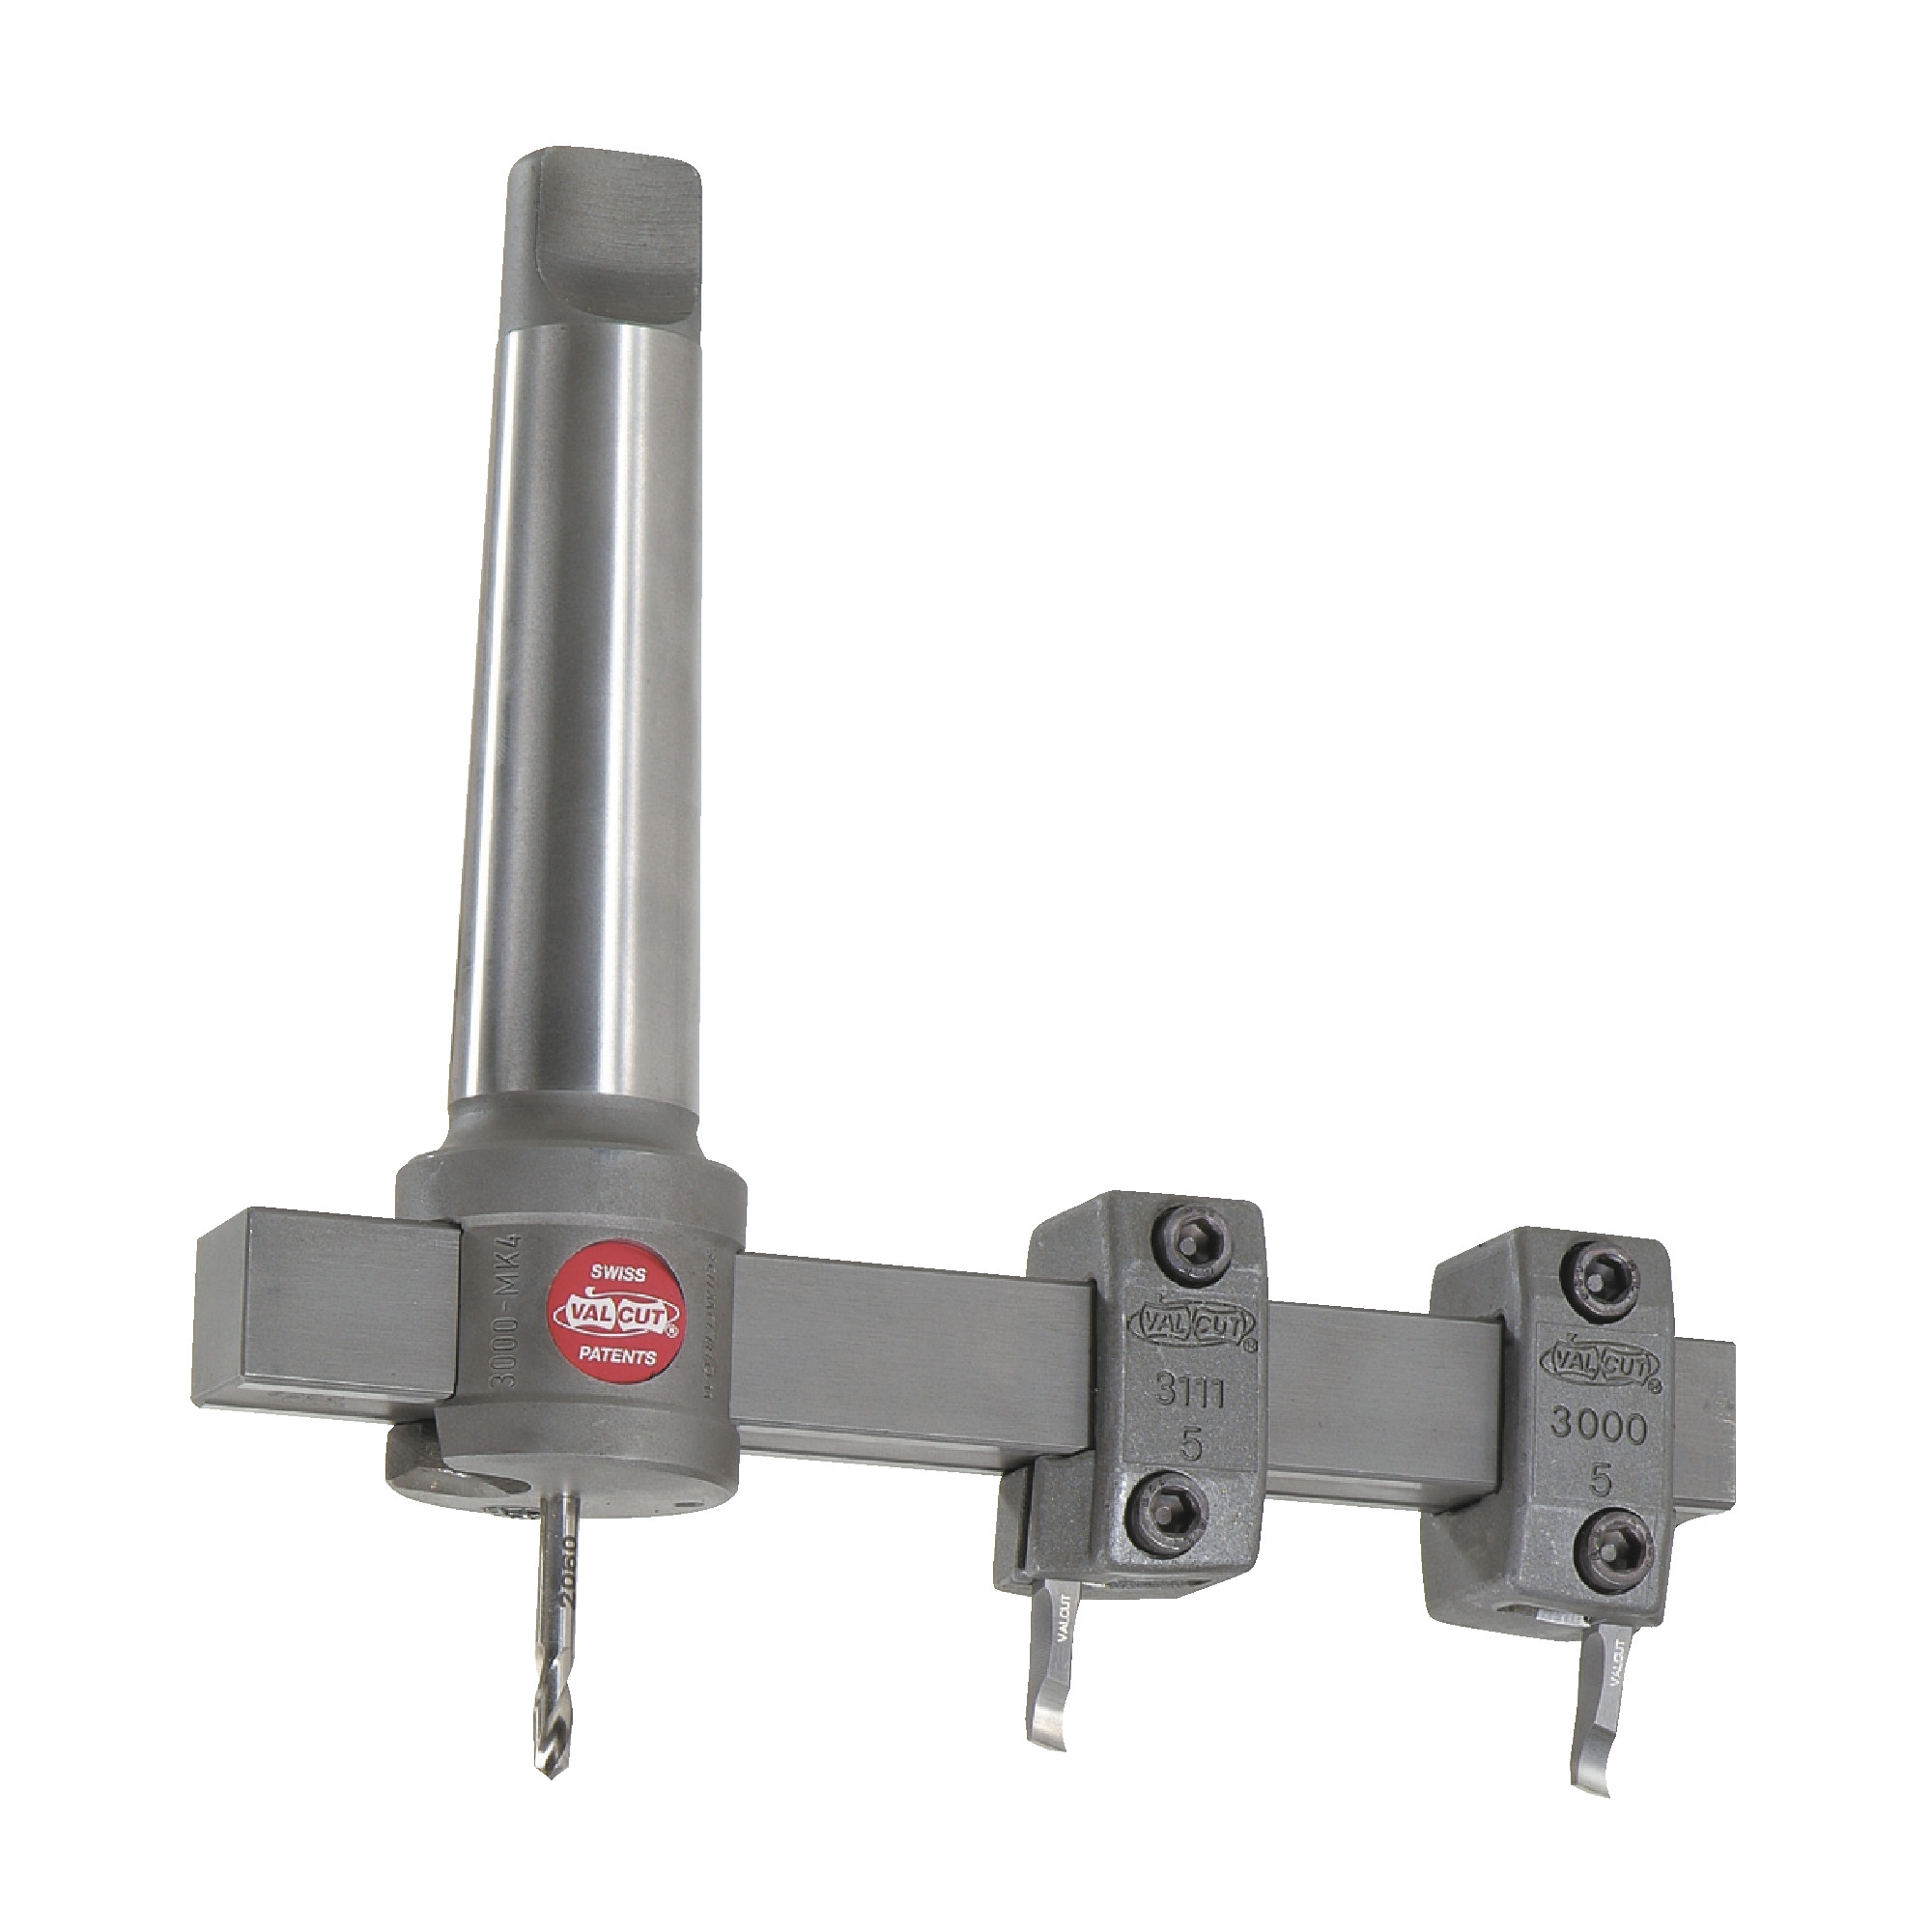 Optinal Accessories For Cutting System